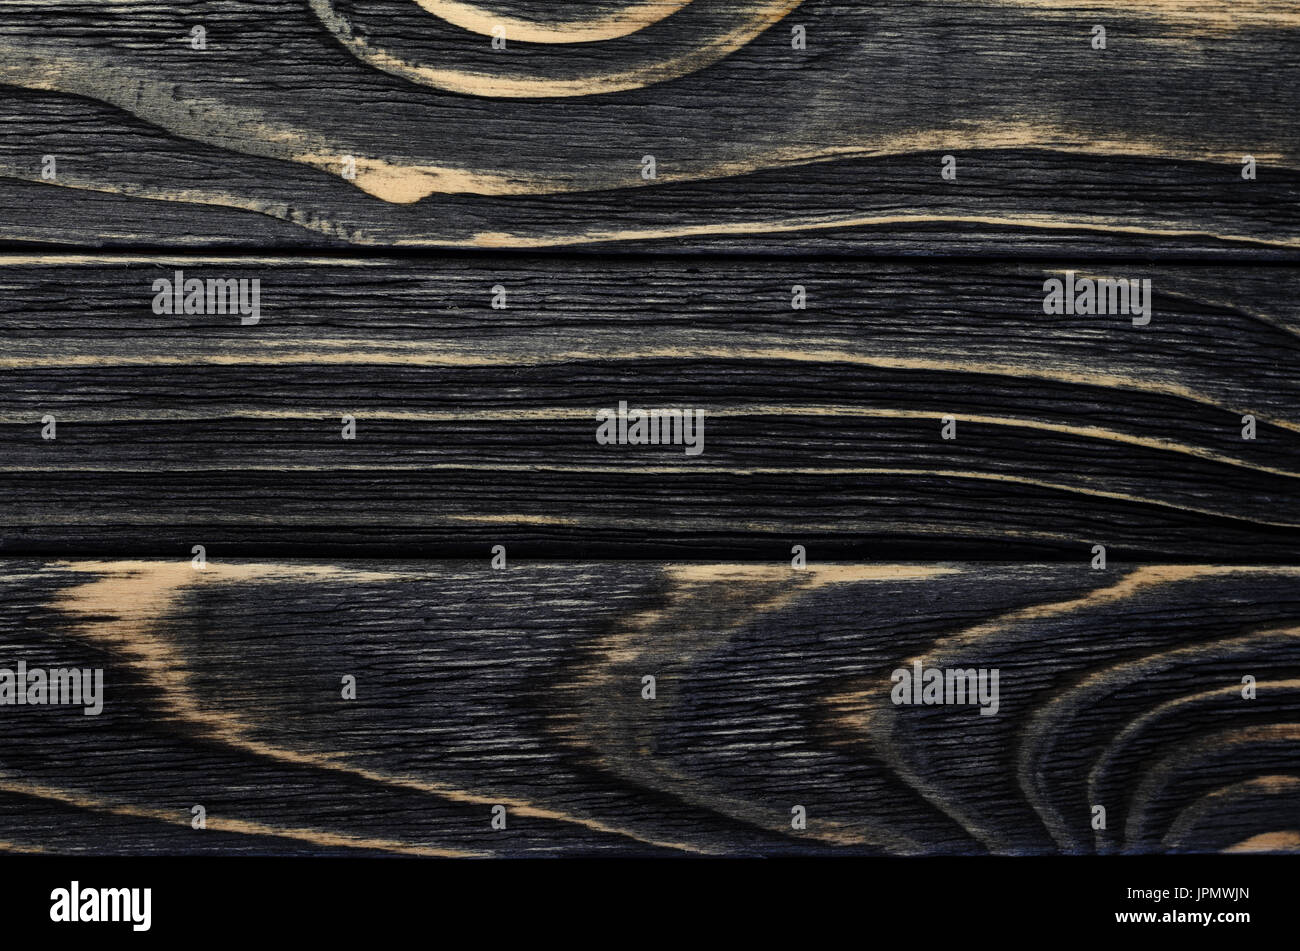 knot element stockfotos knot element bilder seite 8 alamy. Black Bedroom Furniture Sets. Home Design Ideas